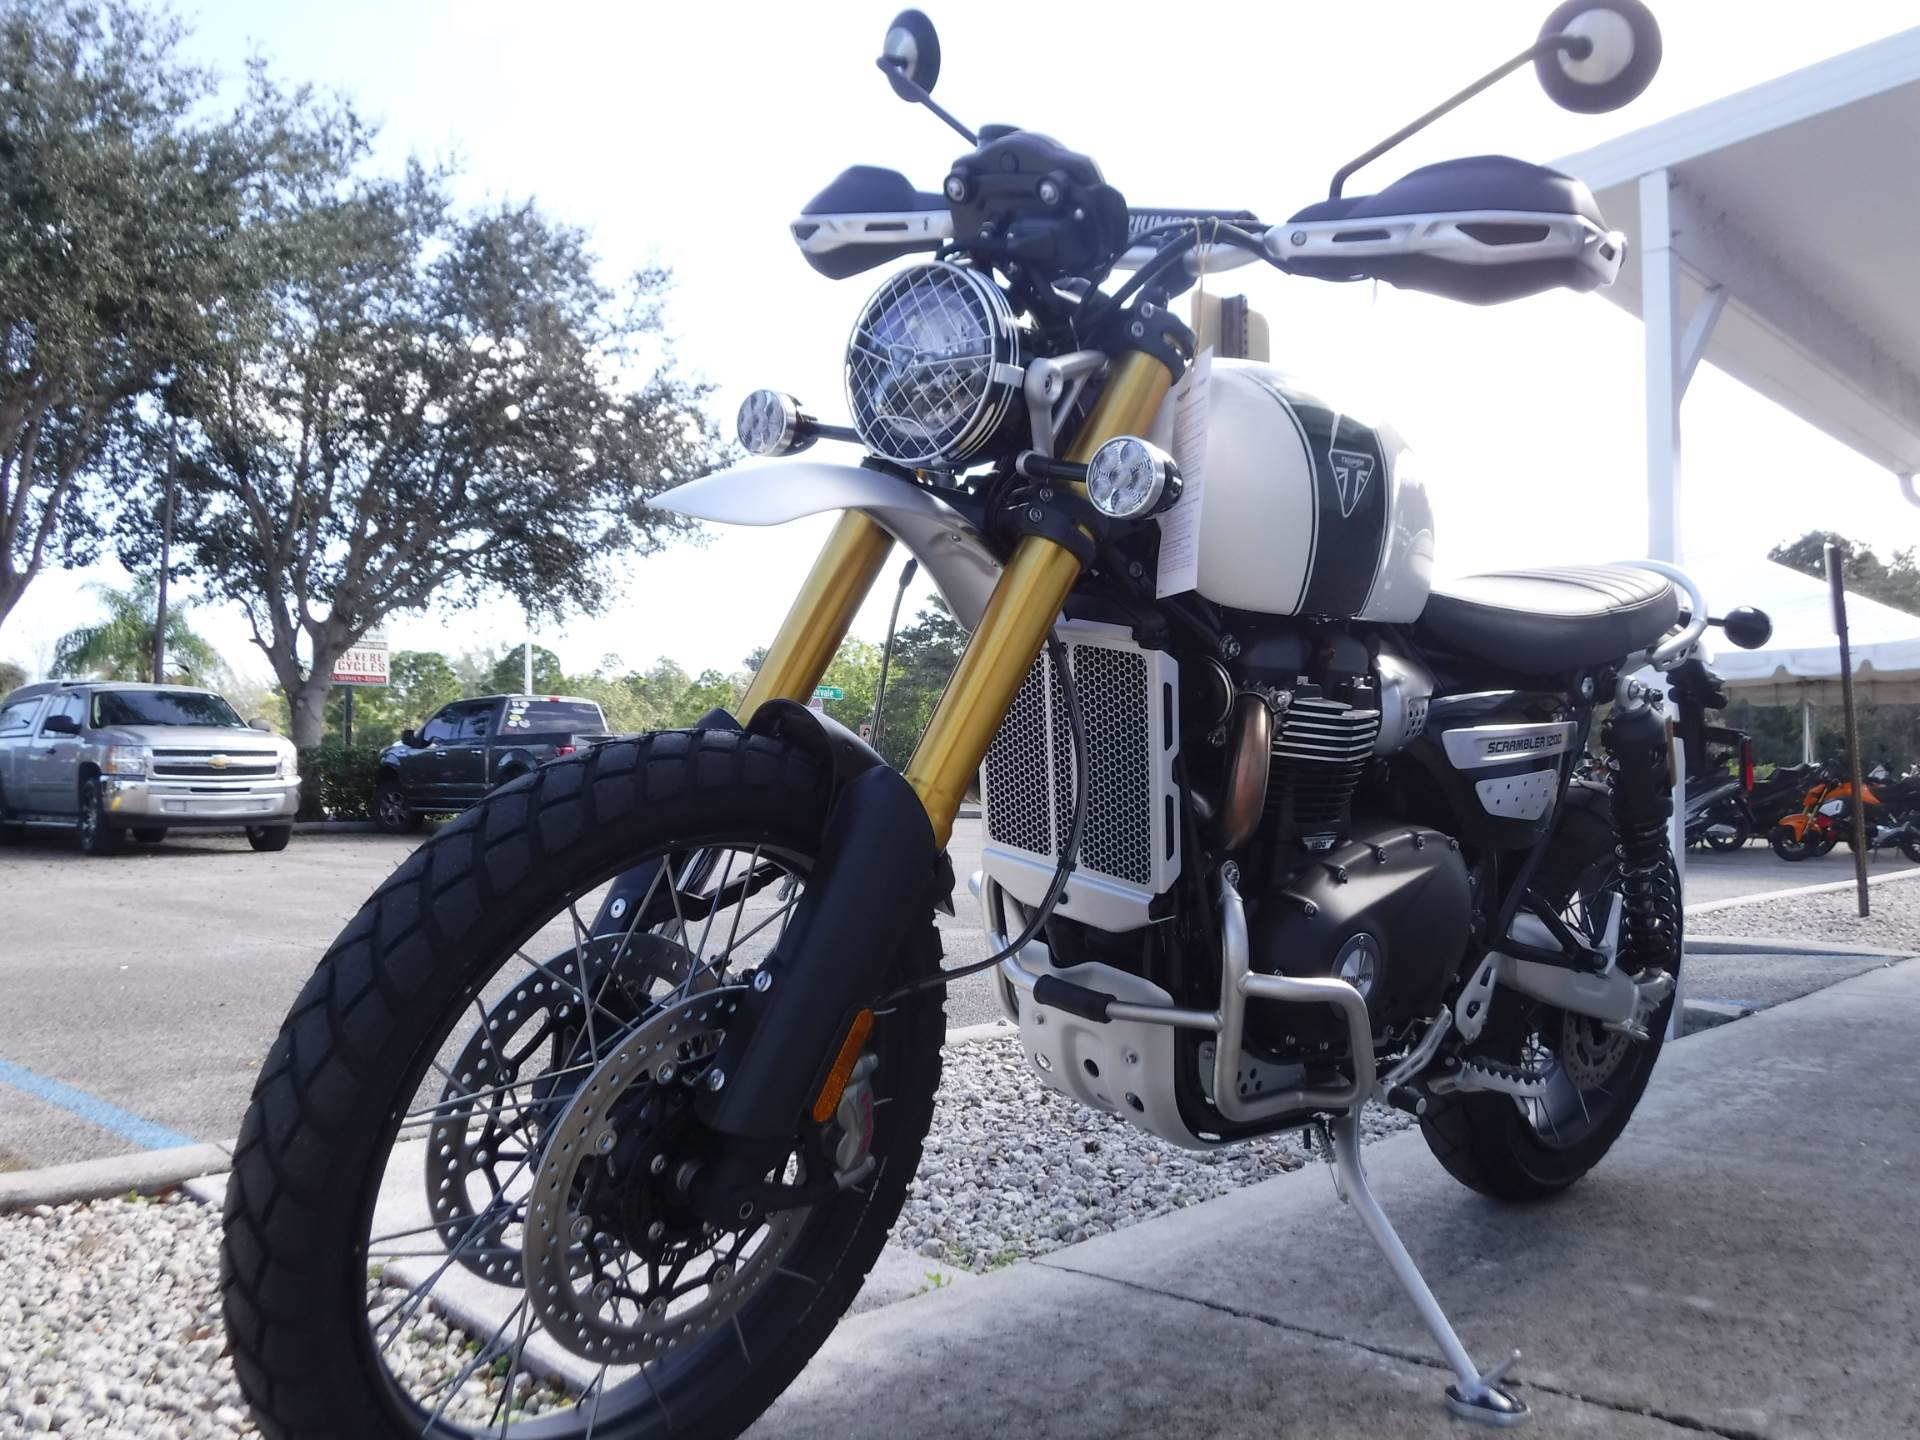 2019 Triumph Scrambler 1200 XE - Showcase in Stuart, Florida - Photo 4